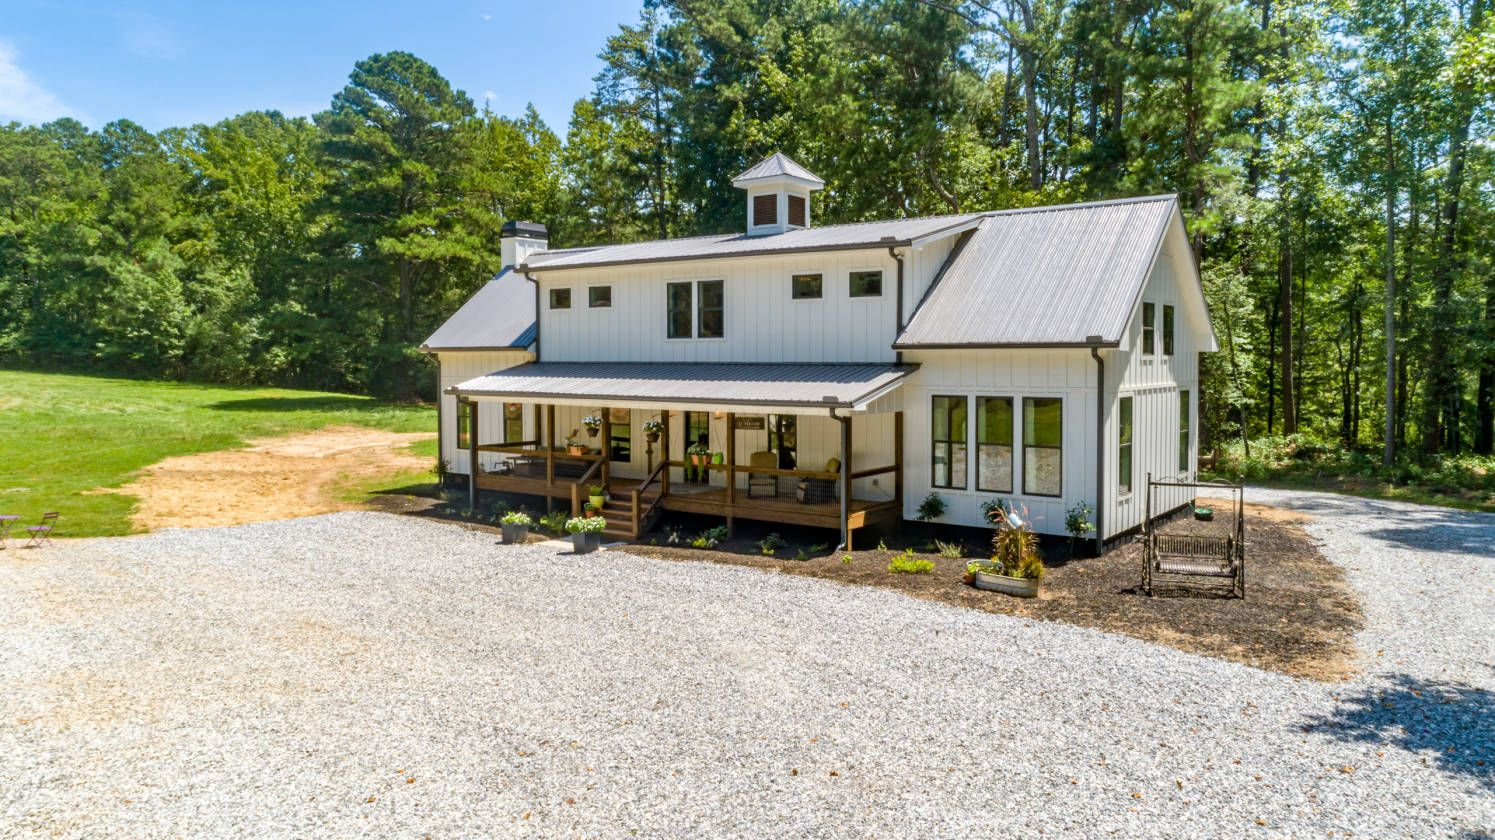 Equestrian estate for sale in forsyth county